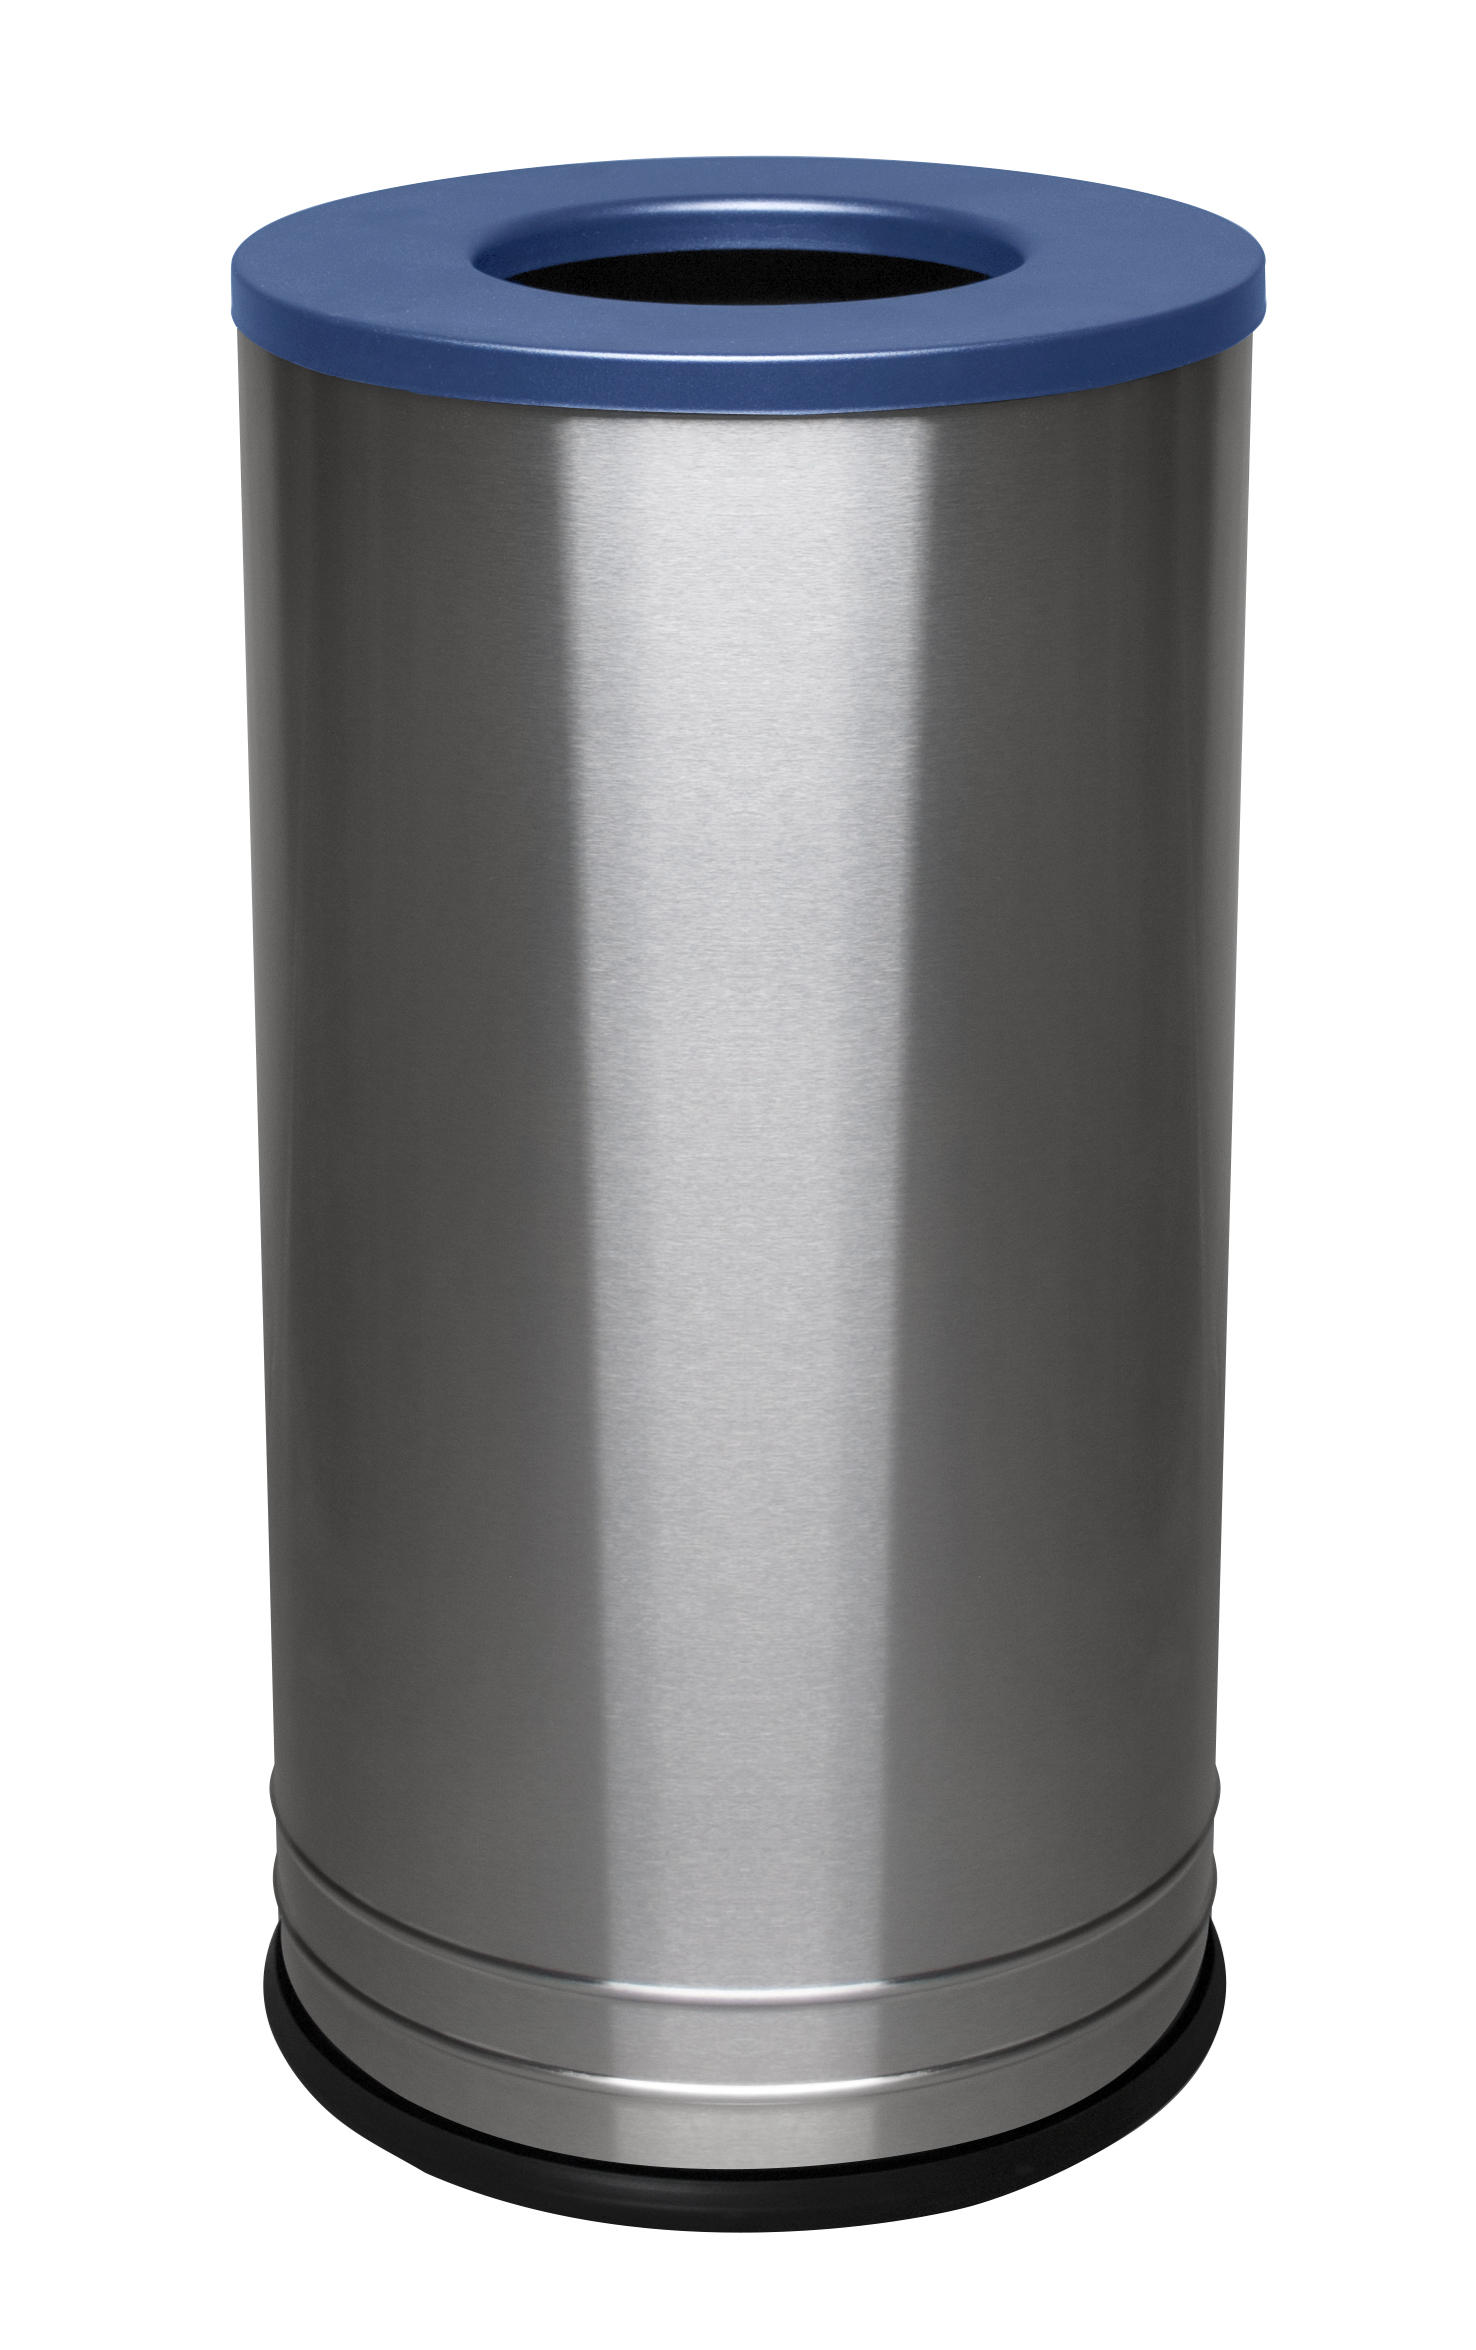 Indoor Garbage Cans 18 Gallon International Collection Indoor Trash